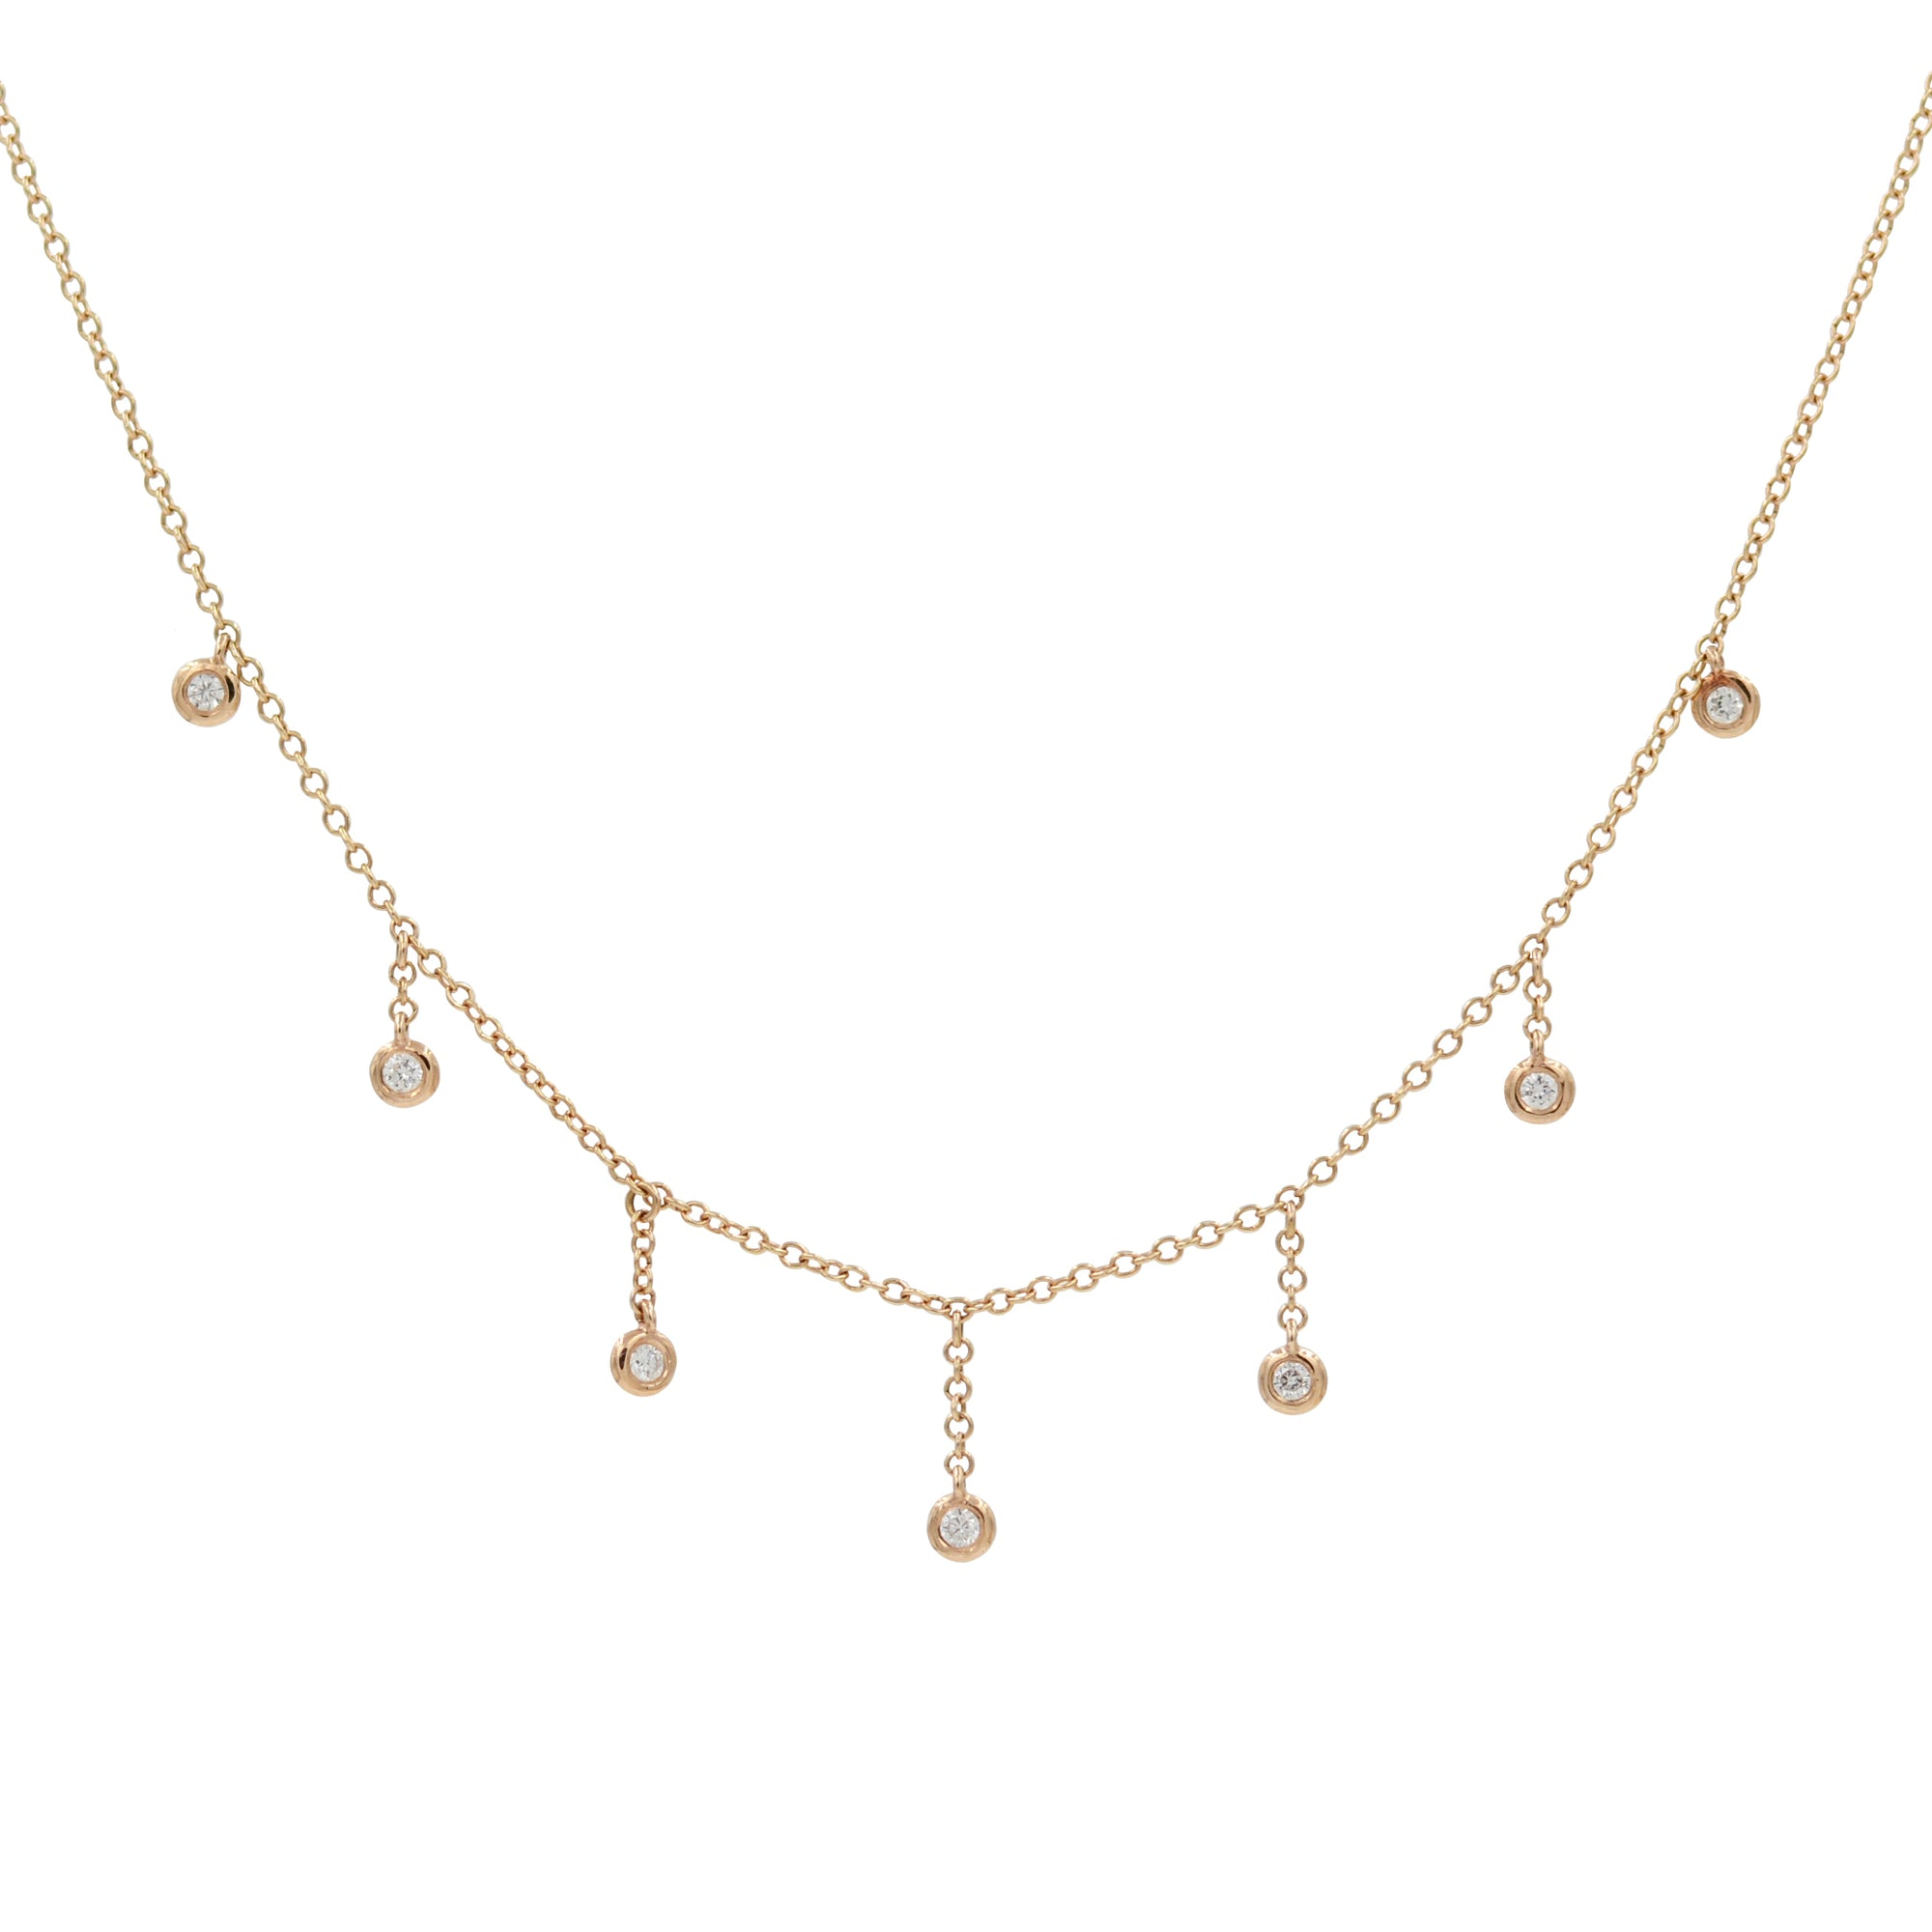 Raindrop Choker Necklace With Diamonds in 14k Rose Gold